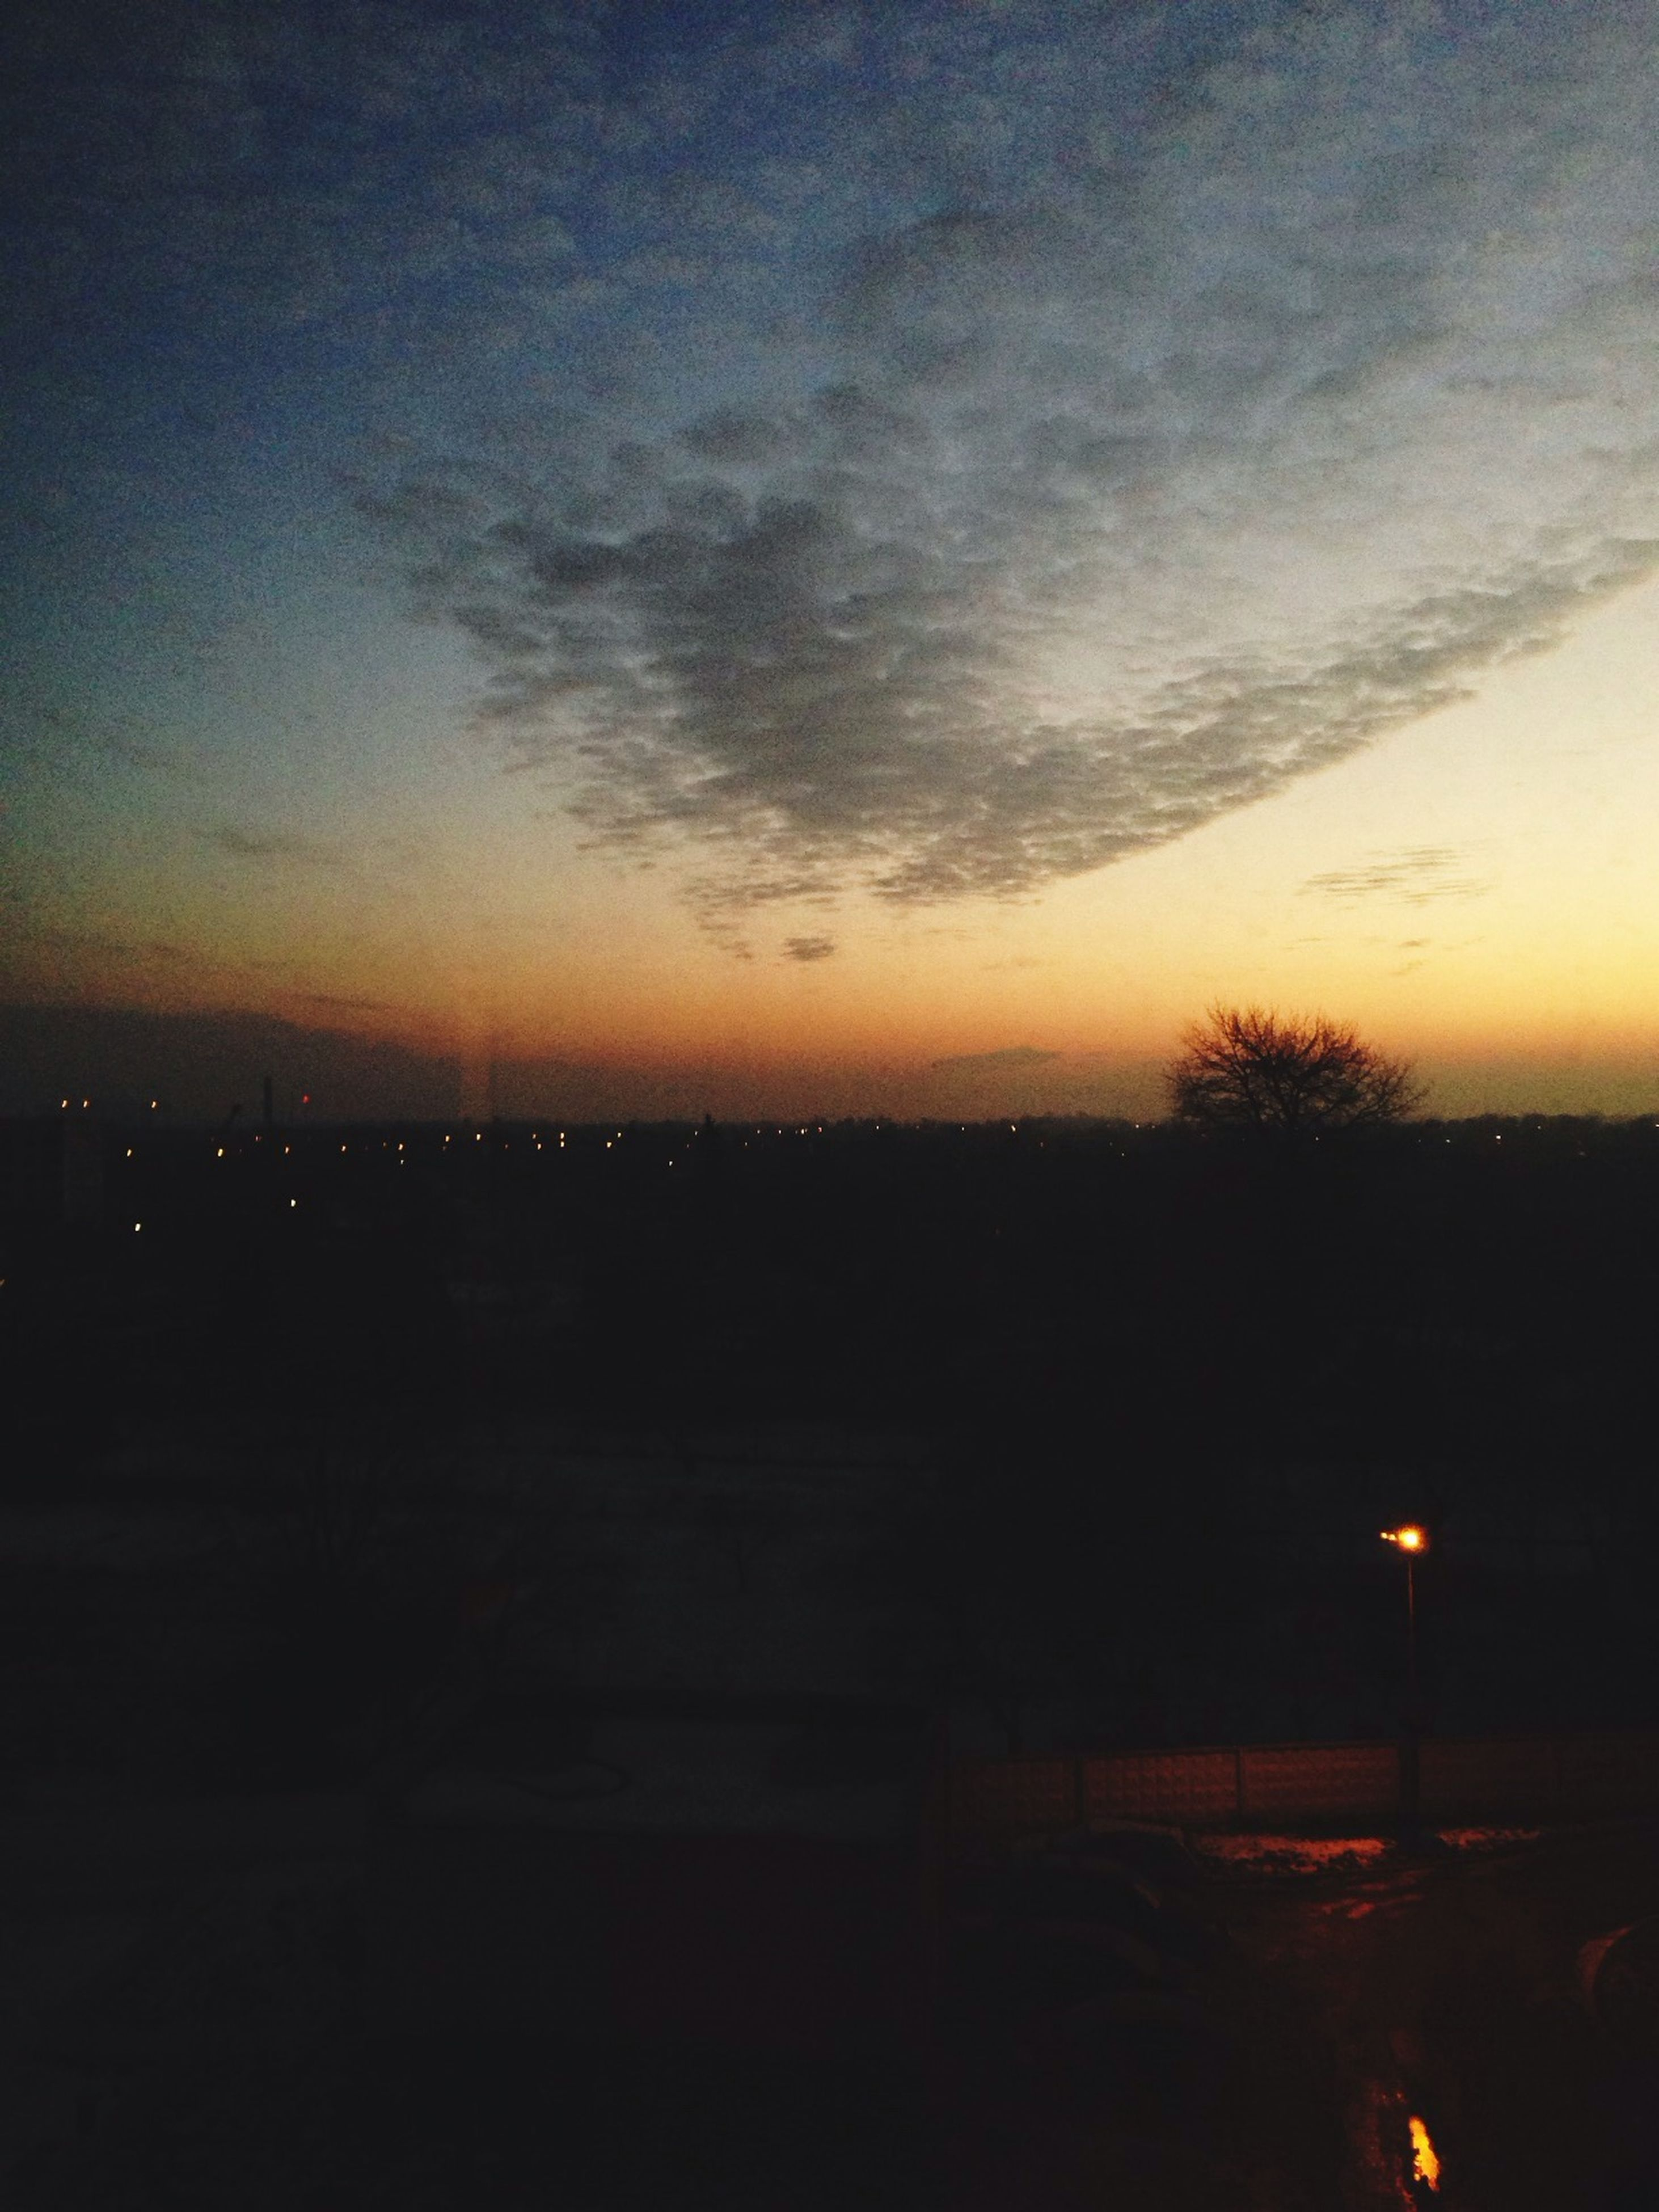 night, silhouette, dark, sky, copy space, dusk, illuminated, weather, tranquility, nature, transportation, fog, scenics, outdoors, tranquil scene, beauty in nature, no people, street light, low angle view, sunset